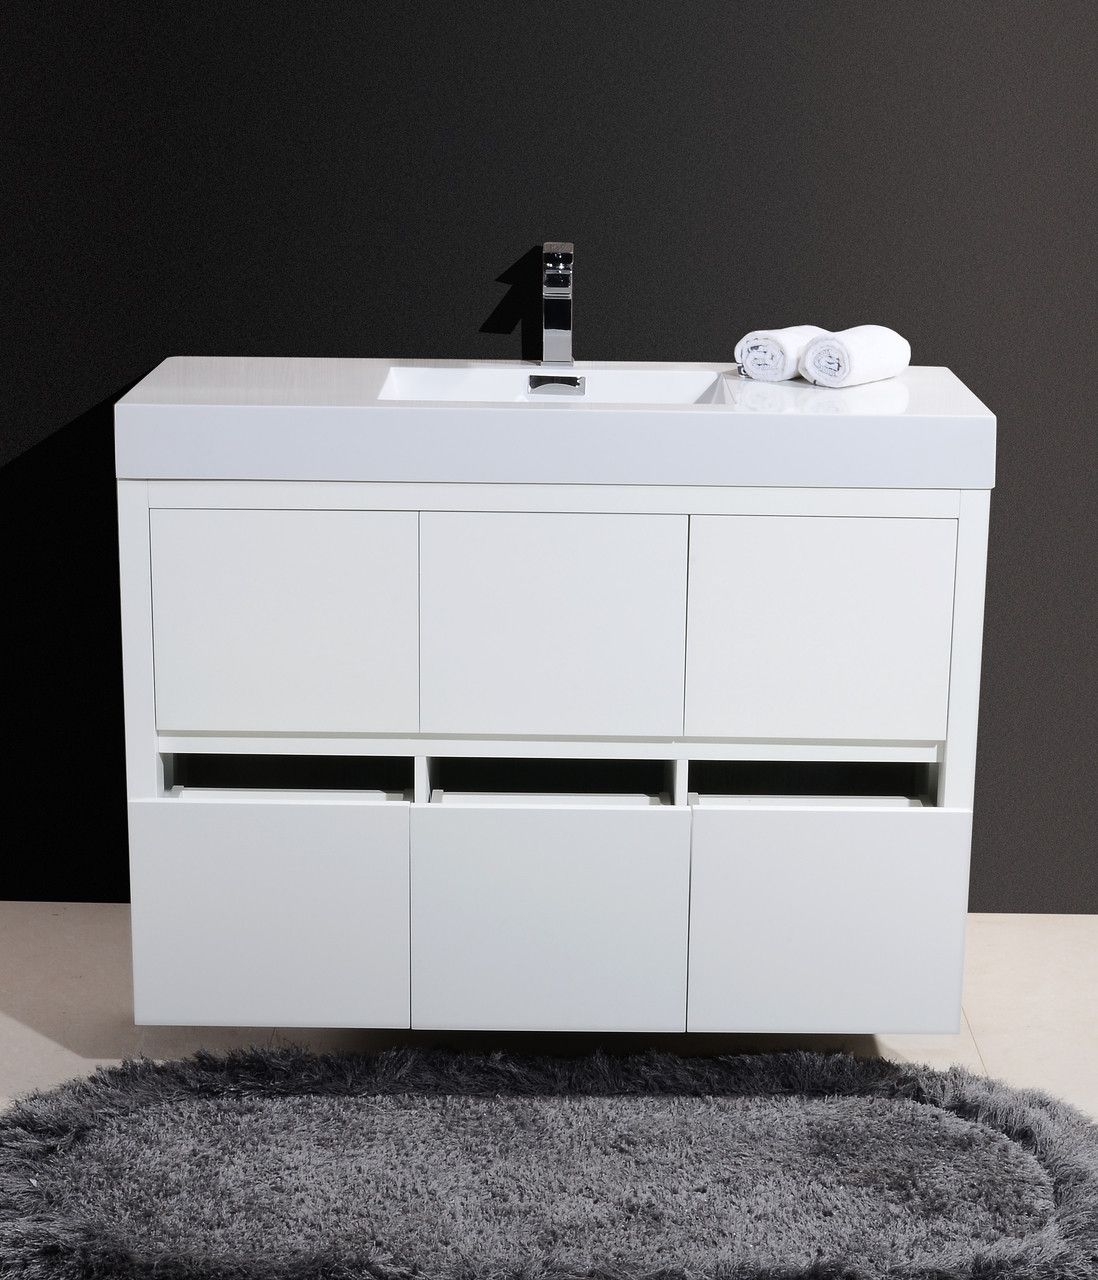 The Bliss Is One Of The Most Elegant Modern Bathroom Vanities Around - 48 inch modern bathroom vanity